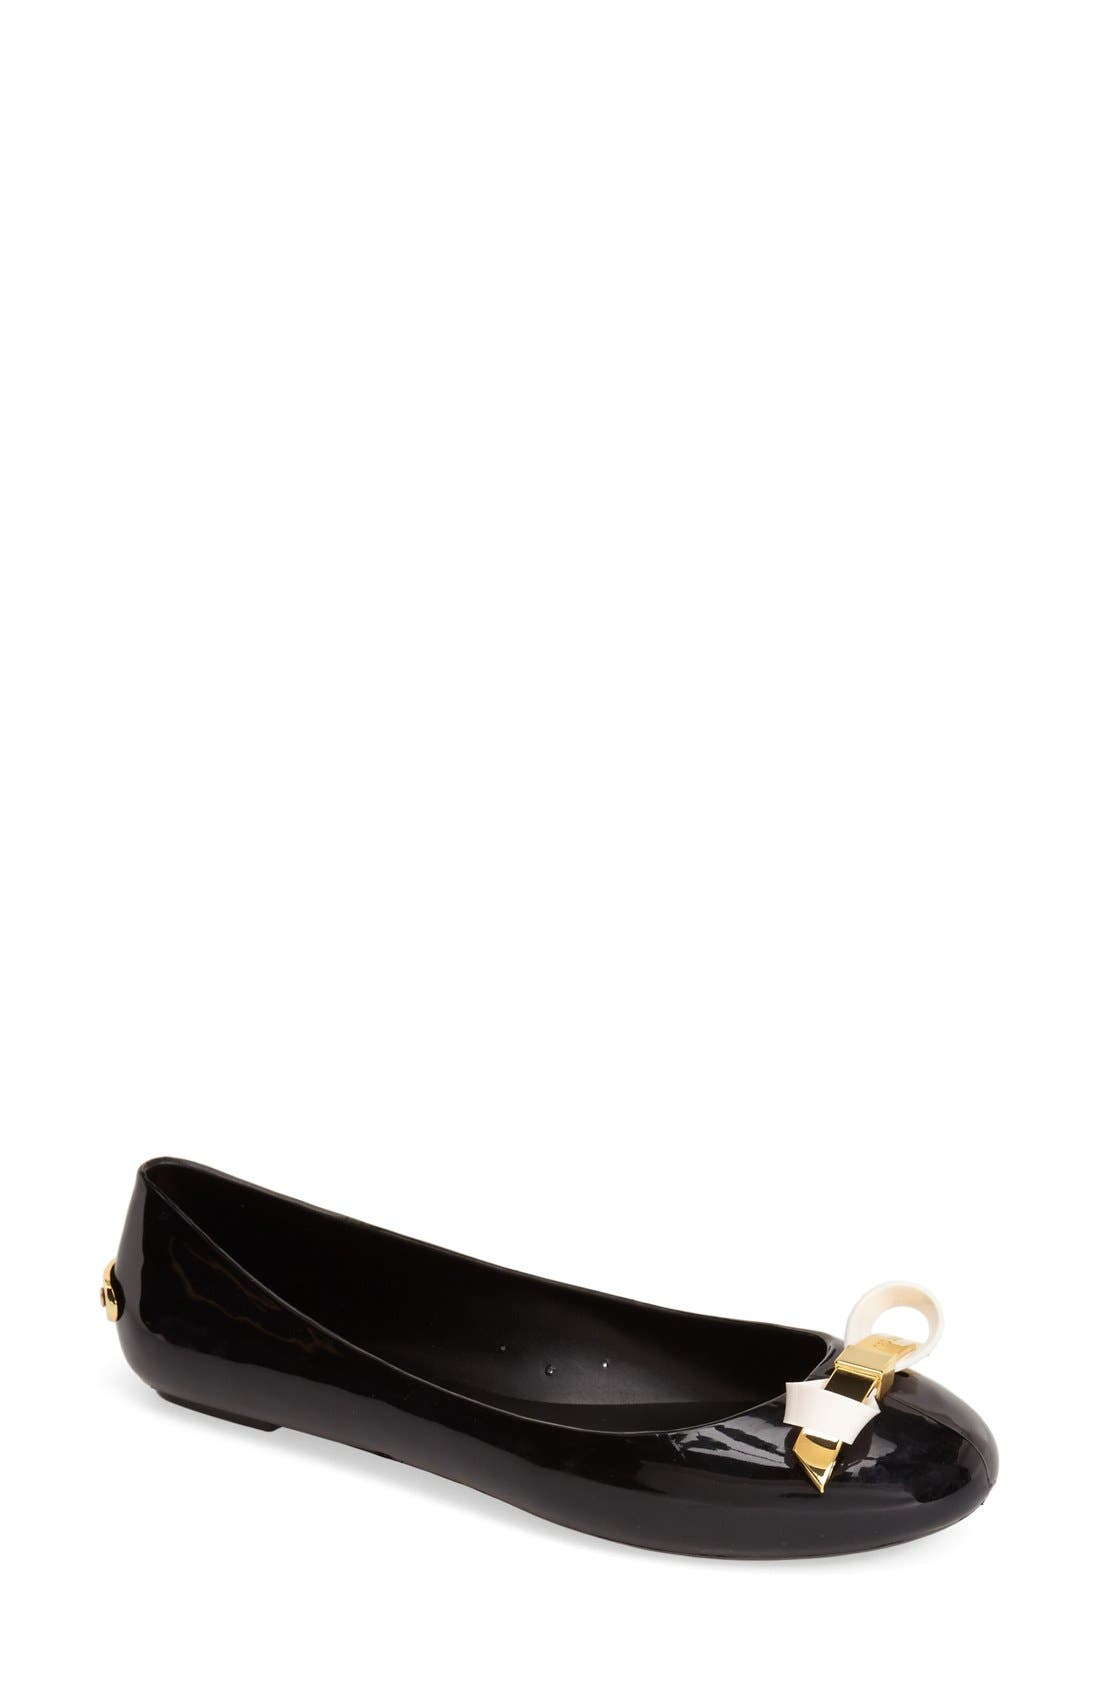 Main Image - Ted Baker London 'Issan' Jelly Flat (Women)